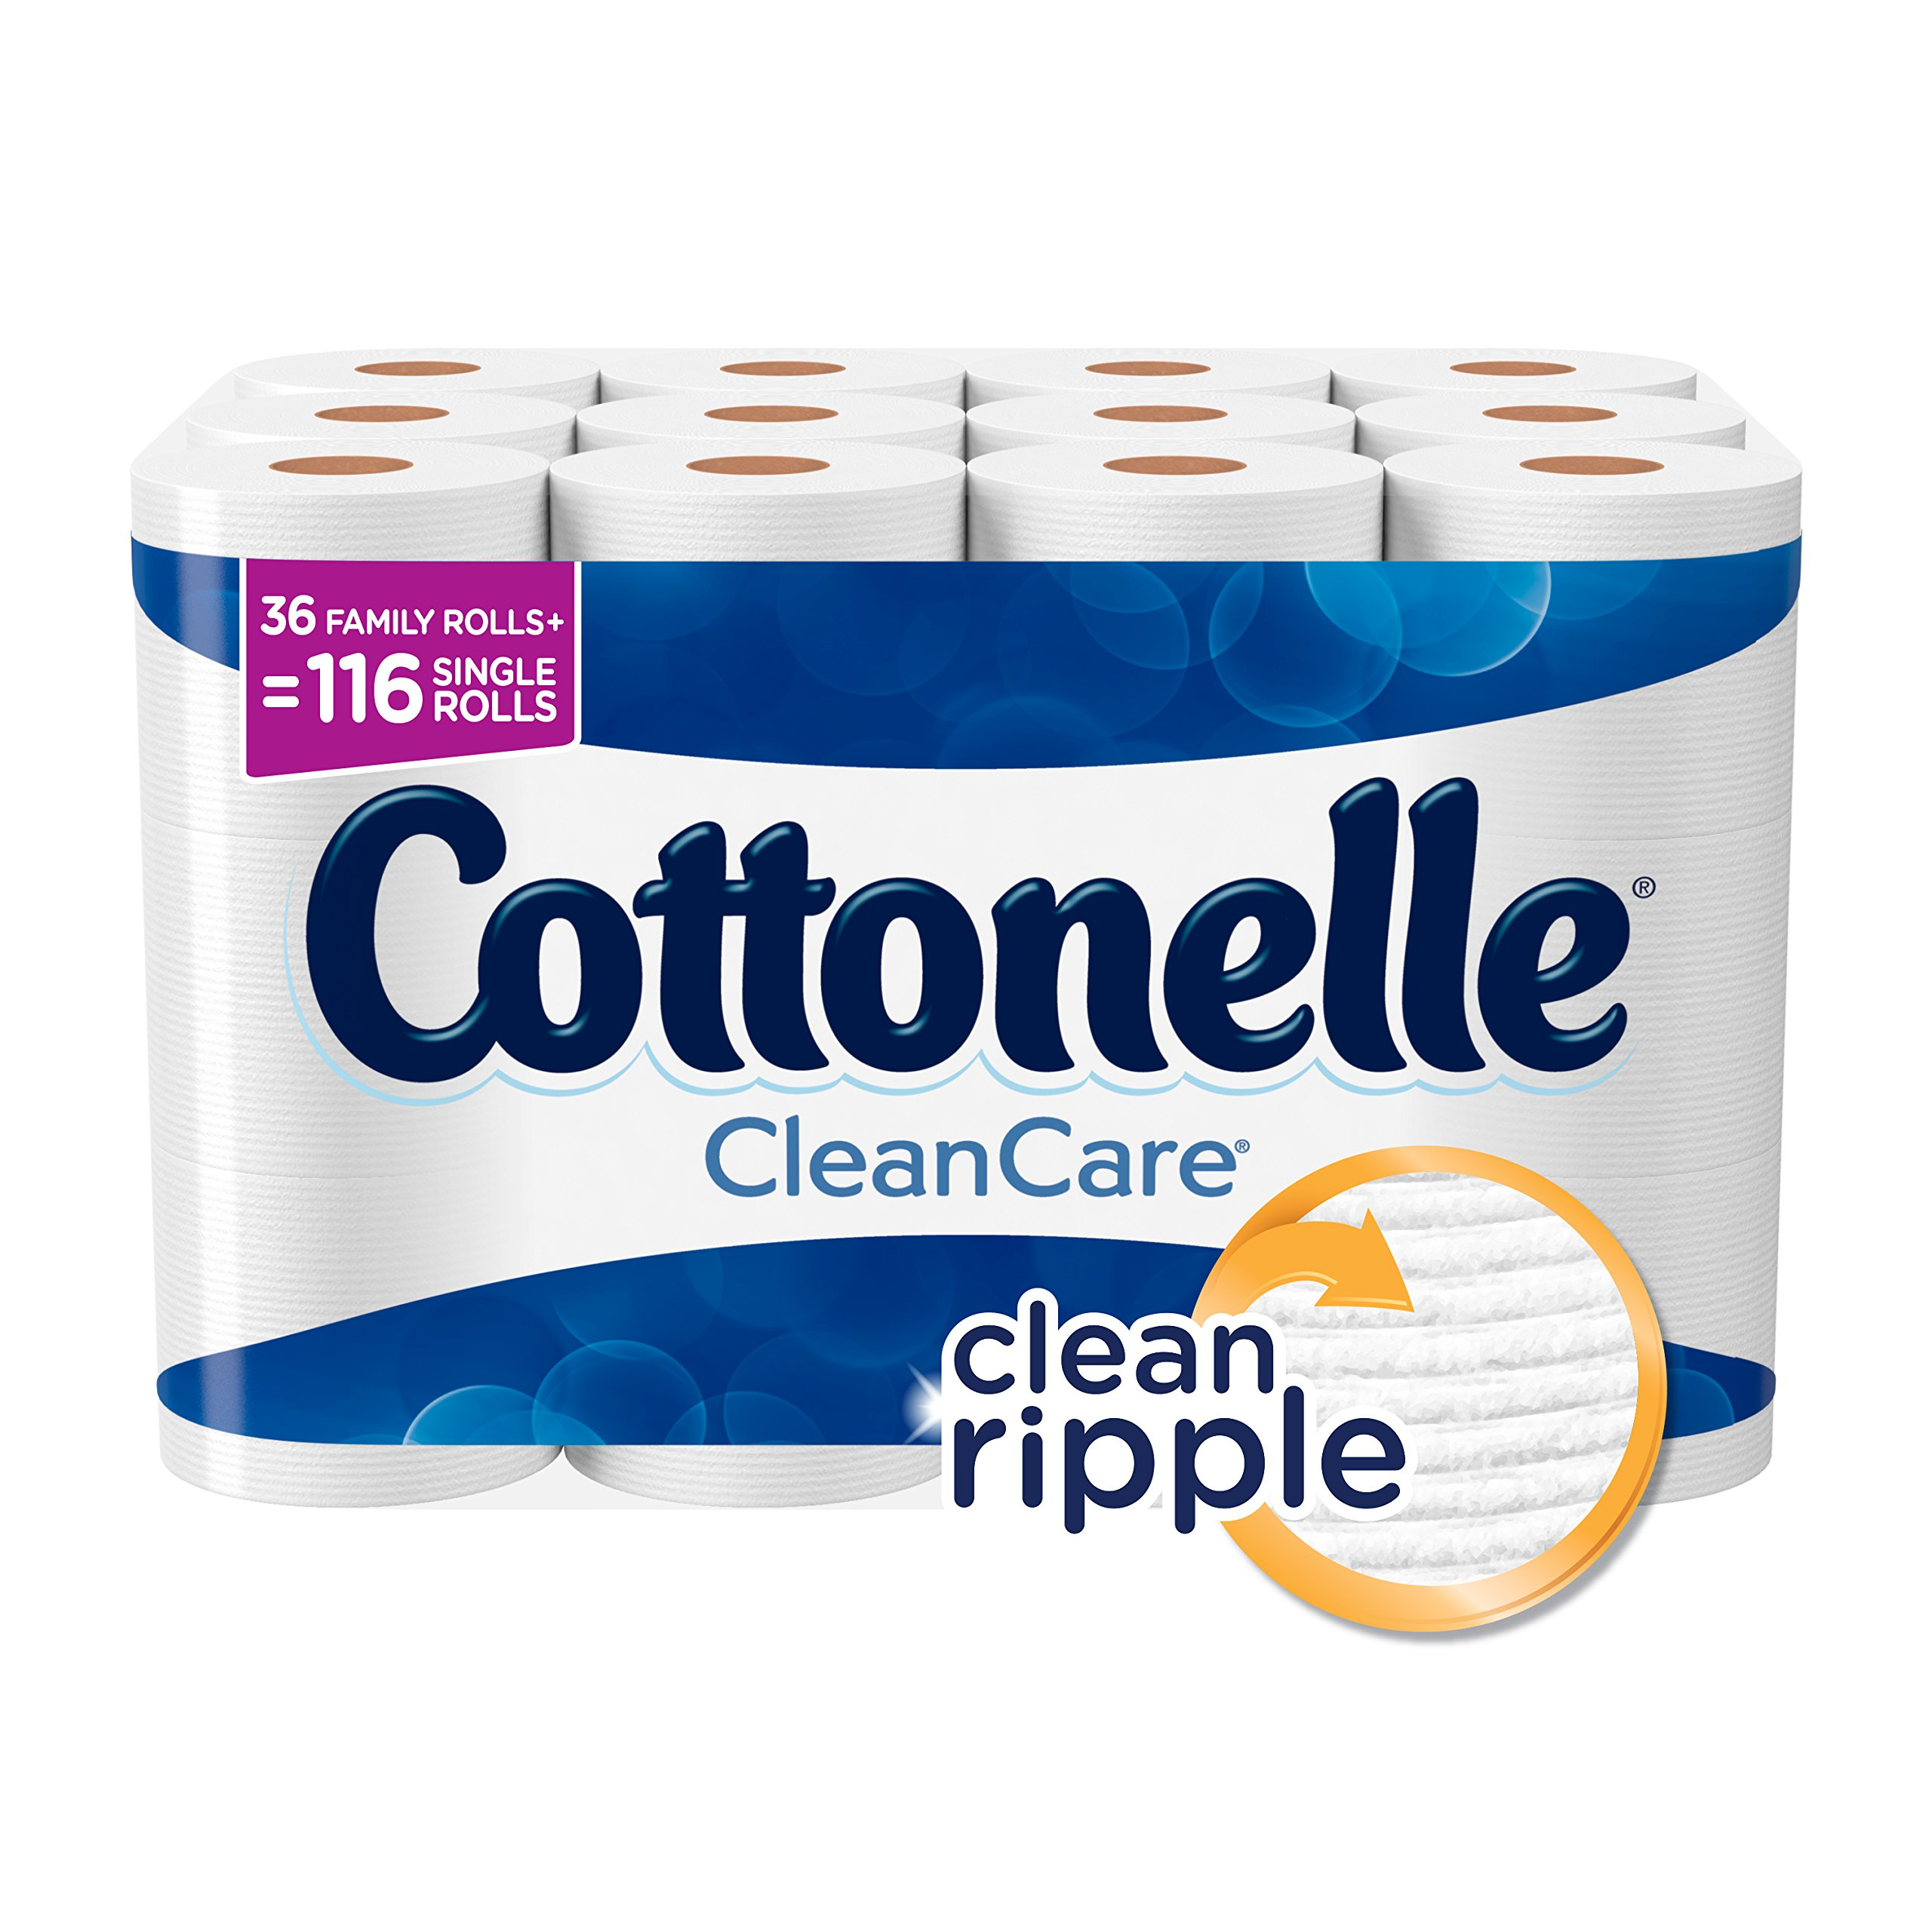 Cottonelle CleanCare Family Roll Toilet Paper (Pack of 36 Rolls), Bath Tissue, Ultra Soft Toilet Paper Rolls with Clean Ripple Texture, Sewer and Septic Safe by Cottonelle